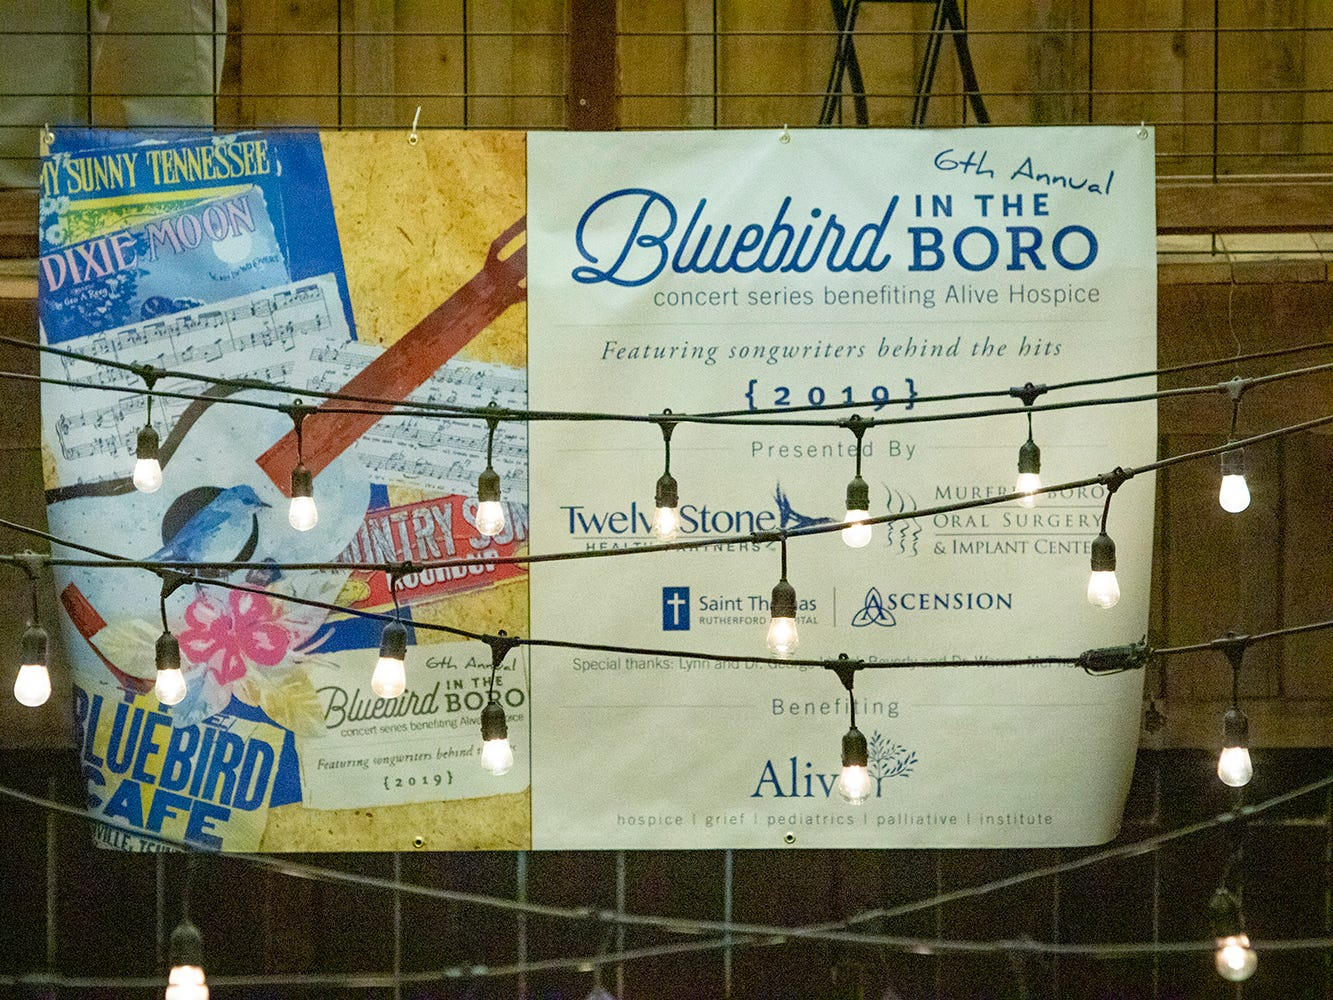 The sixth annual Bluebird in the Boro benefit for Alive Hospice was held March 4-6, 2019 at The Grove at Williamson Place in Murfreesboro.